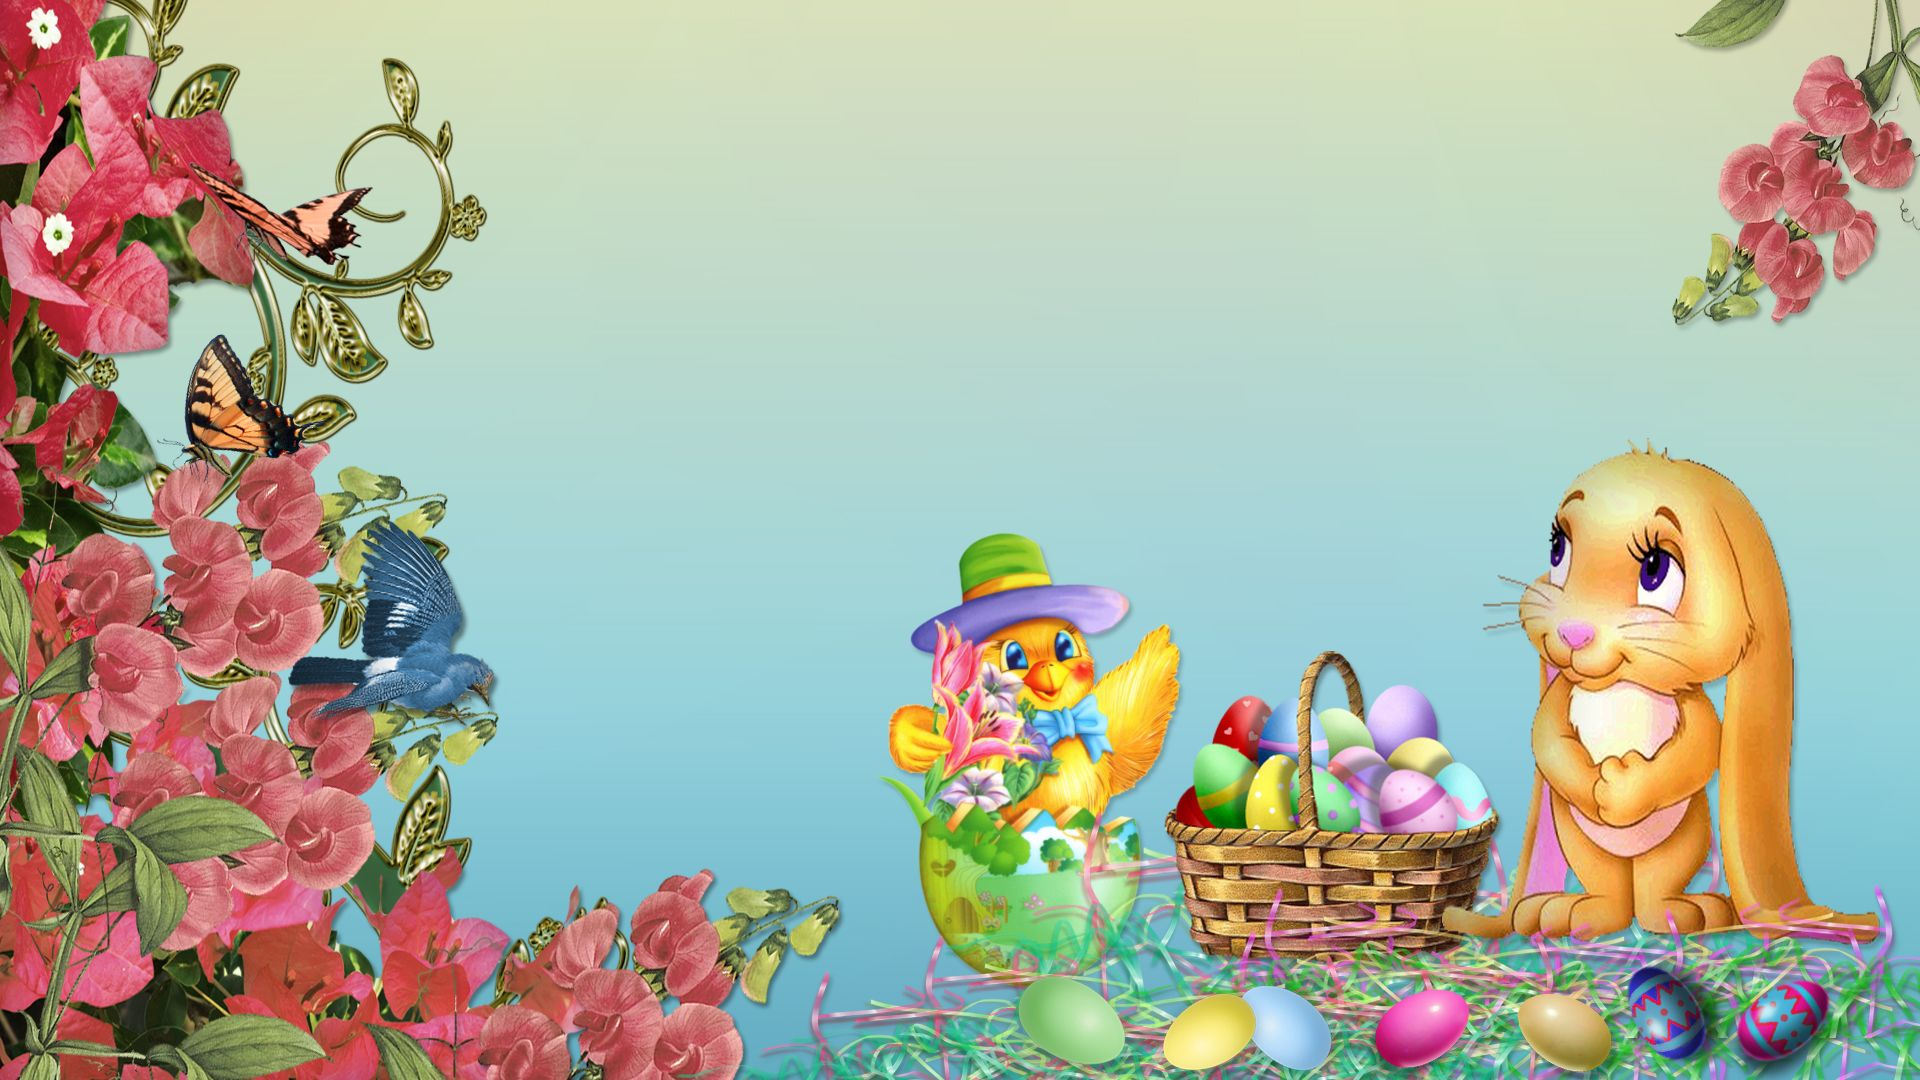 1000 Images About Easter Wallpaper On Pinterest: Easter Wallpapers For Desktop